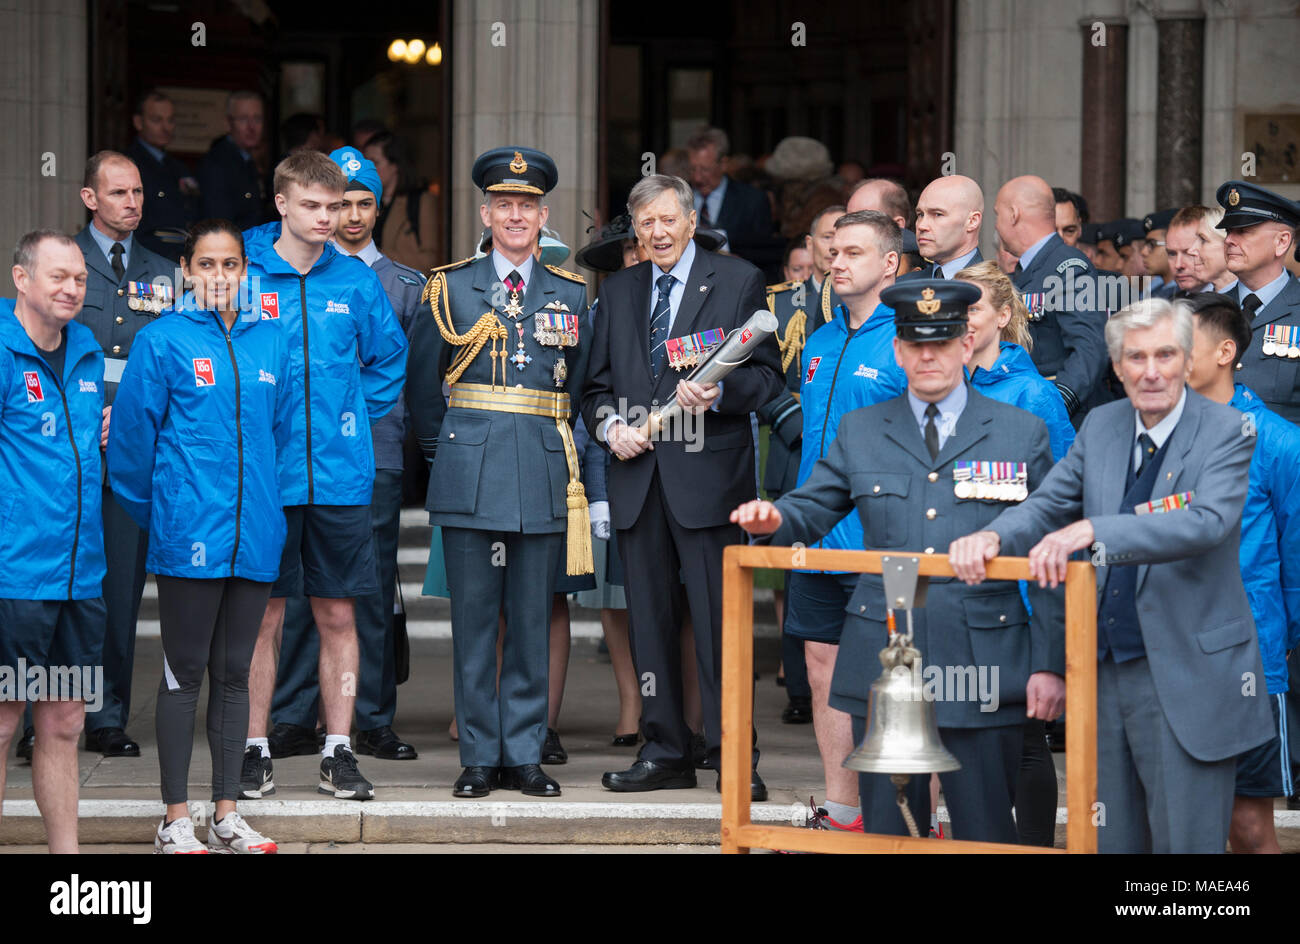 """Royal Courts of Justice, London, UK. 1 April 2018. The RAF100 Baton Relay is launched at the main entrance of the Royal Courts of Justice. The steps are lined with Royal Air Force Air Cadets as the Chief of the Air Staff accompanies distinguished Royal Air Force veteran, Air Commodore (retd) Charles Clarke, carrying the RAF100 Baton. A Scramble Bell is sounded by esteemed veteran and one of the """"Few"""" Wing Commander (retd) Paul Farnes (right), a former Battle of Britain fighter pilot, to signal the launch of the relay. Credit: Malcolm Park/Alamy Live News. - Stock Image"""